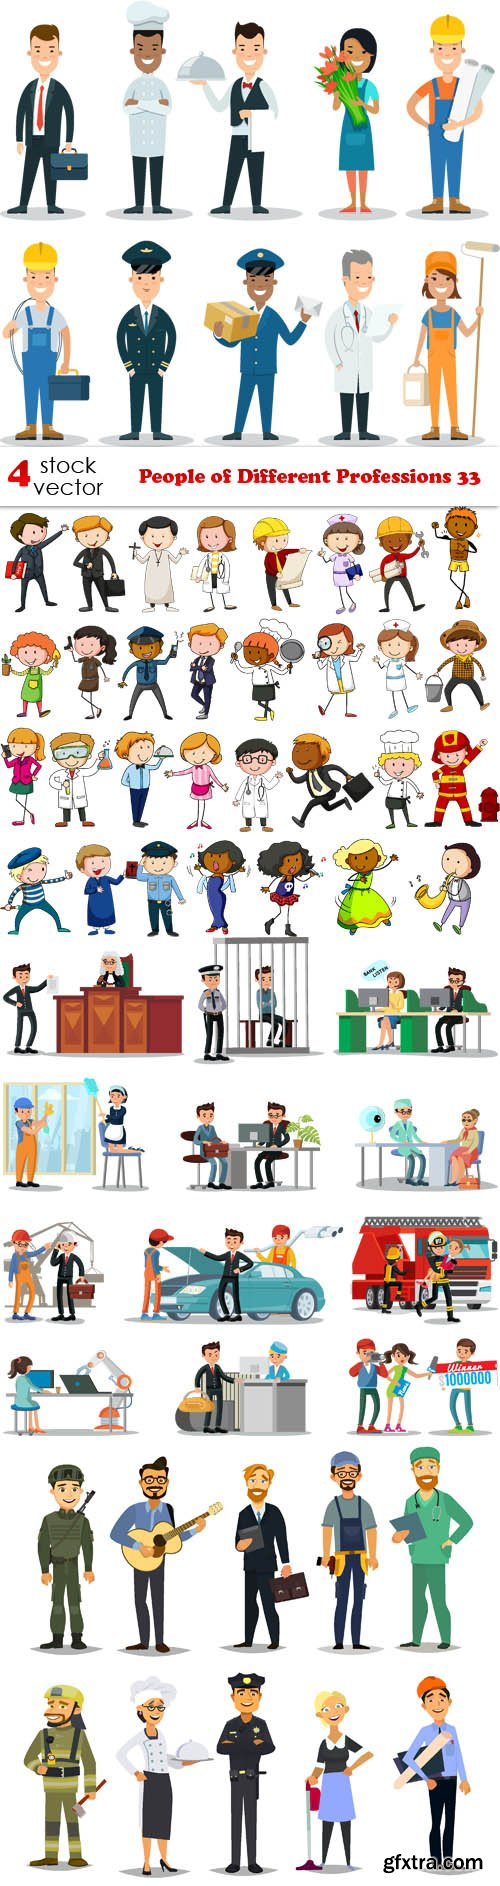 Vectors - People of Different Professions 33